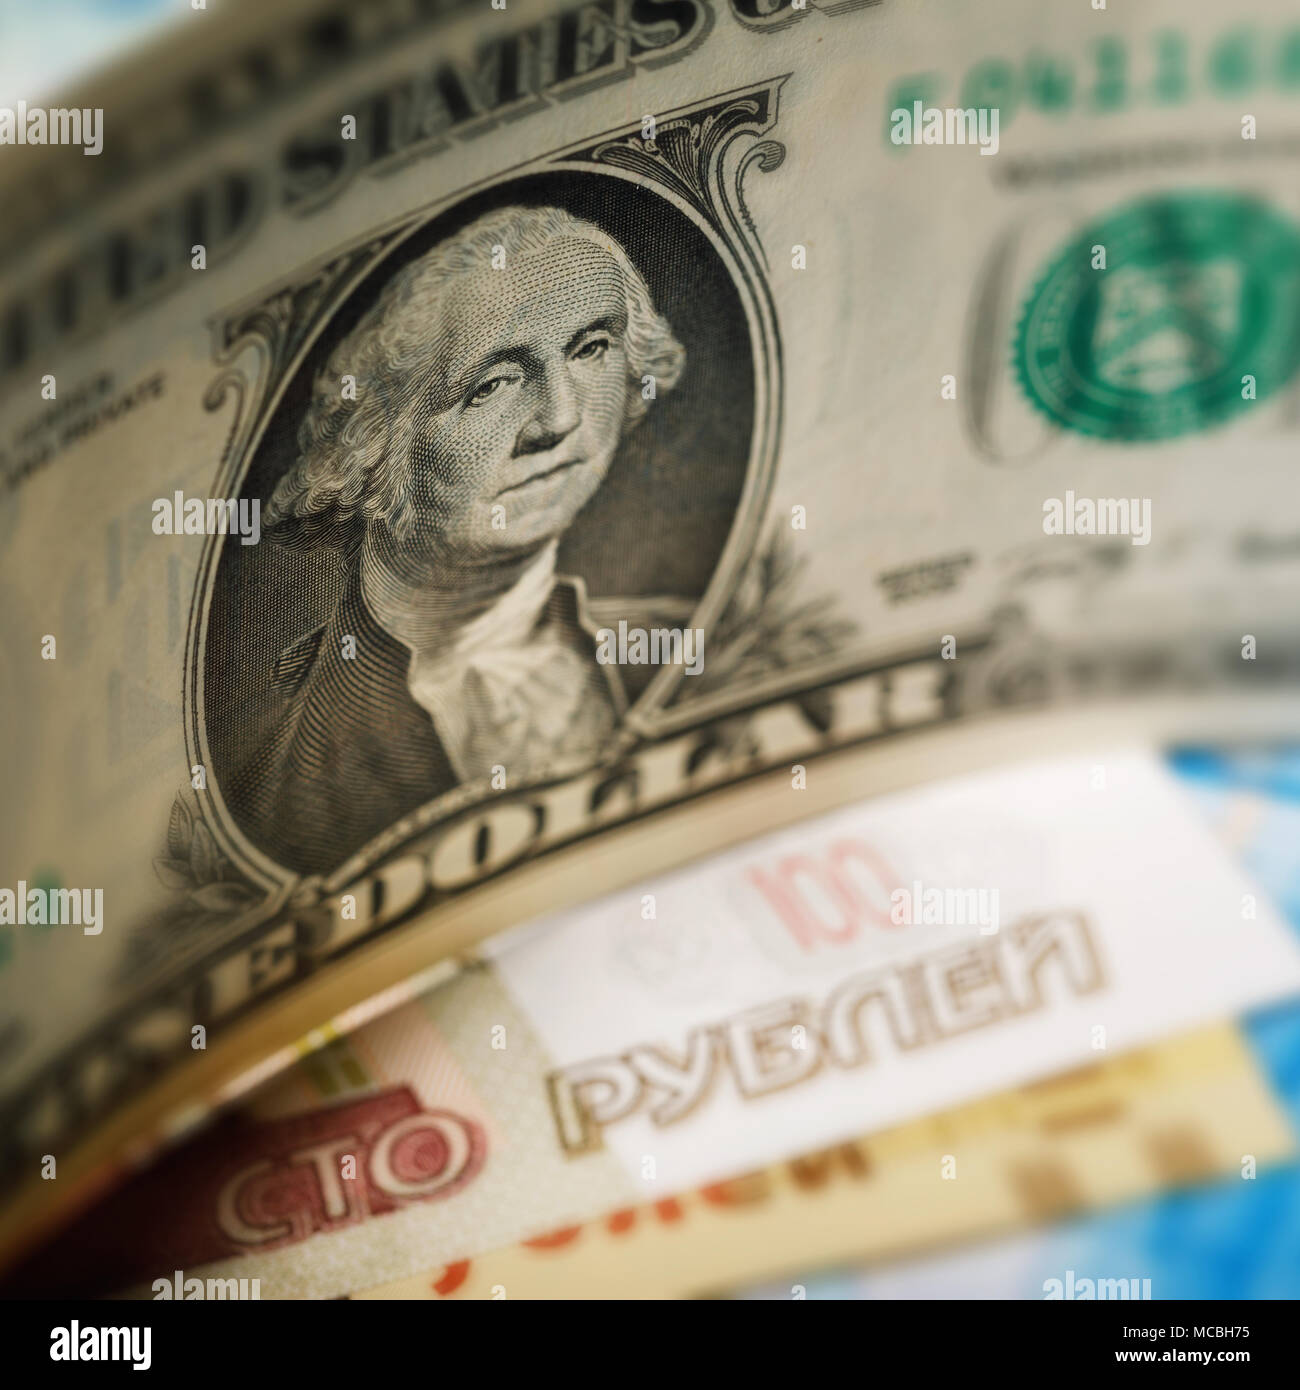 American dollar and Russian banknotes close-up. Economic crisis in Russia - Stock Image